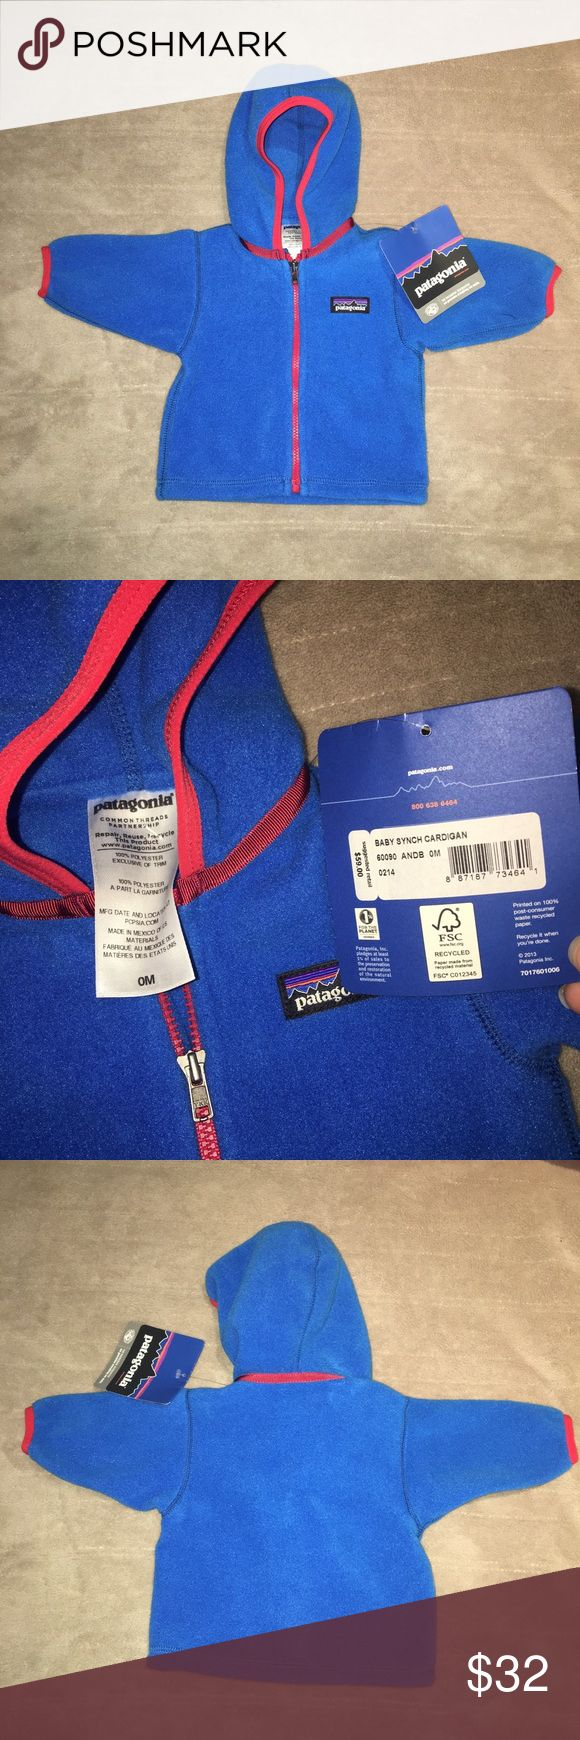 Patagonia Baby Fleece 0-3mo New with tags. Patagonia hoodie baby cardigan fleece in an infant size 0-3 Months.   Product Details: Everyday Wear For Your Baby, No Matter What The Season. Whether you're layering it under his snowsuit for extra warmth on a snowy afternoon stroll, or just zipping him in to it first thing in the morning on a cool spring day, the Patagonia Infant Boys' Fleece Cardigan cuddles your baby in soft warmth. Soft double-faced fleece is durable and warm Patagonia Jackets…